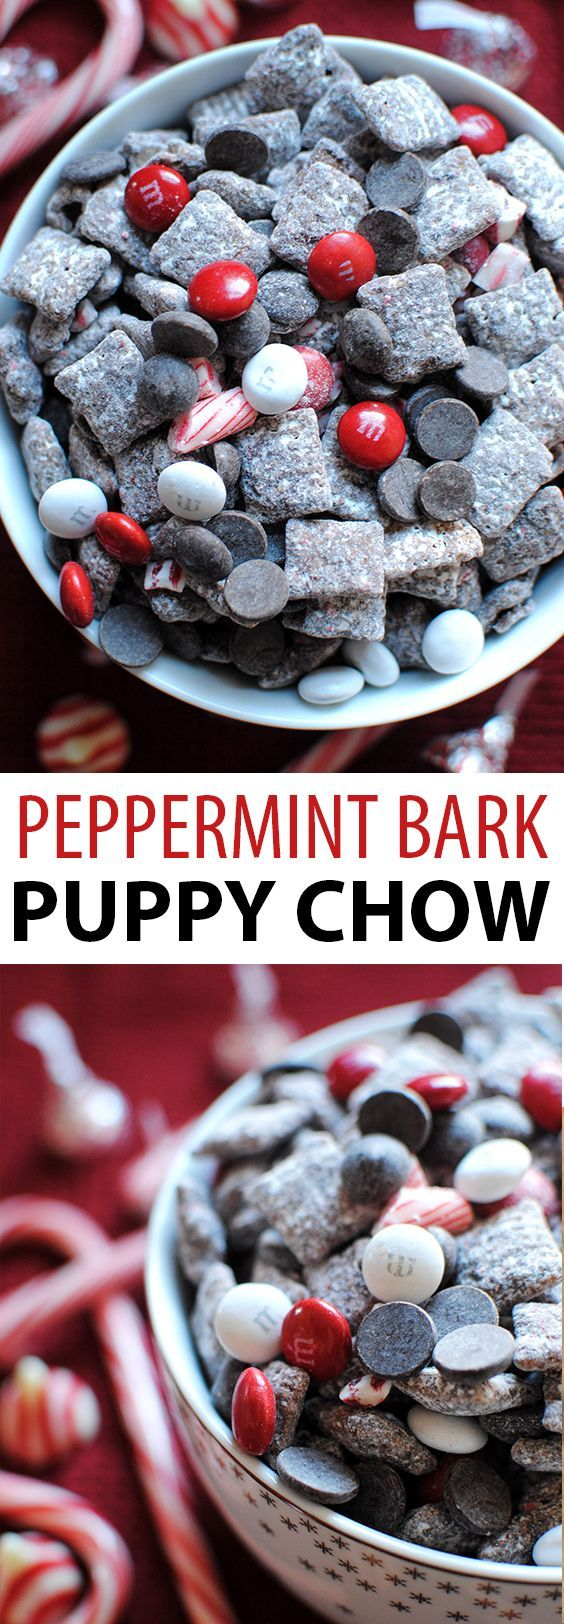 This peppermint bark puppy chow is made with Chex cereal, chocolate, candy cane hershey kisses, candy canes, and M&Ms. So easy to make and so yummy!